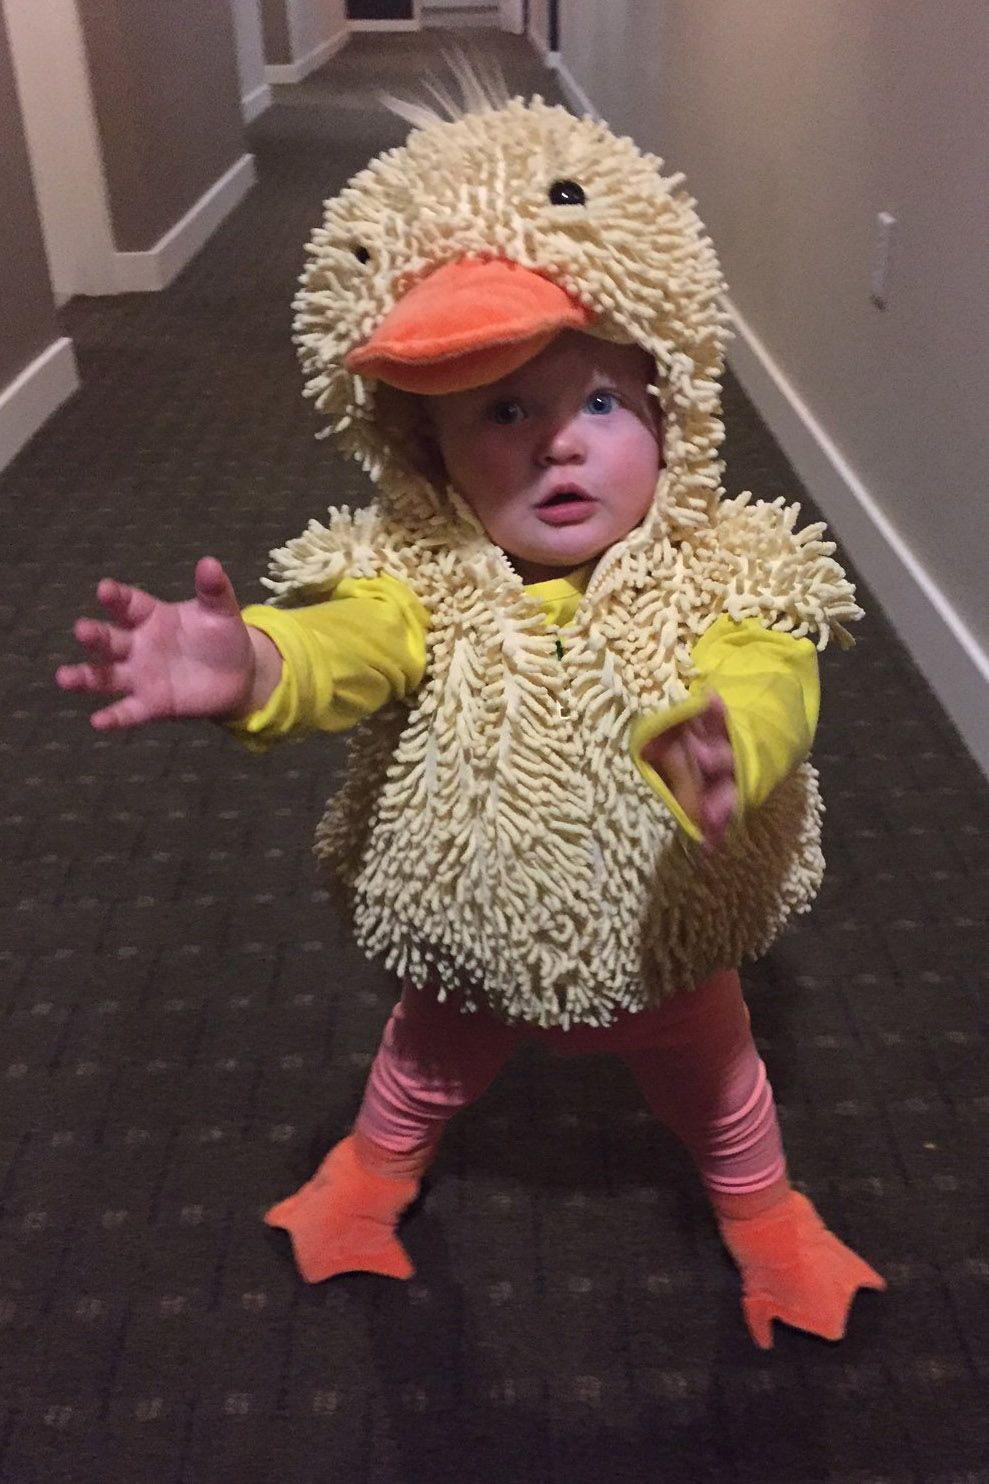 30 funny baby halloween costumes for boys and girls cute and unique